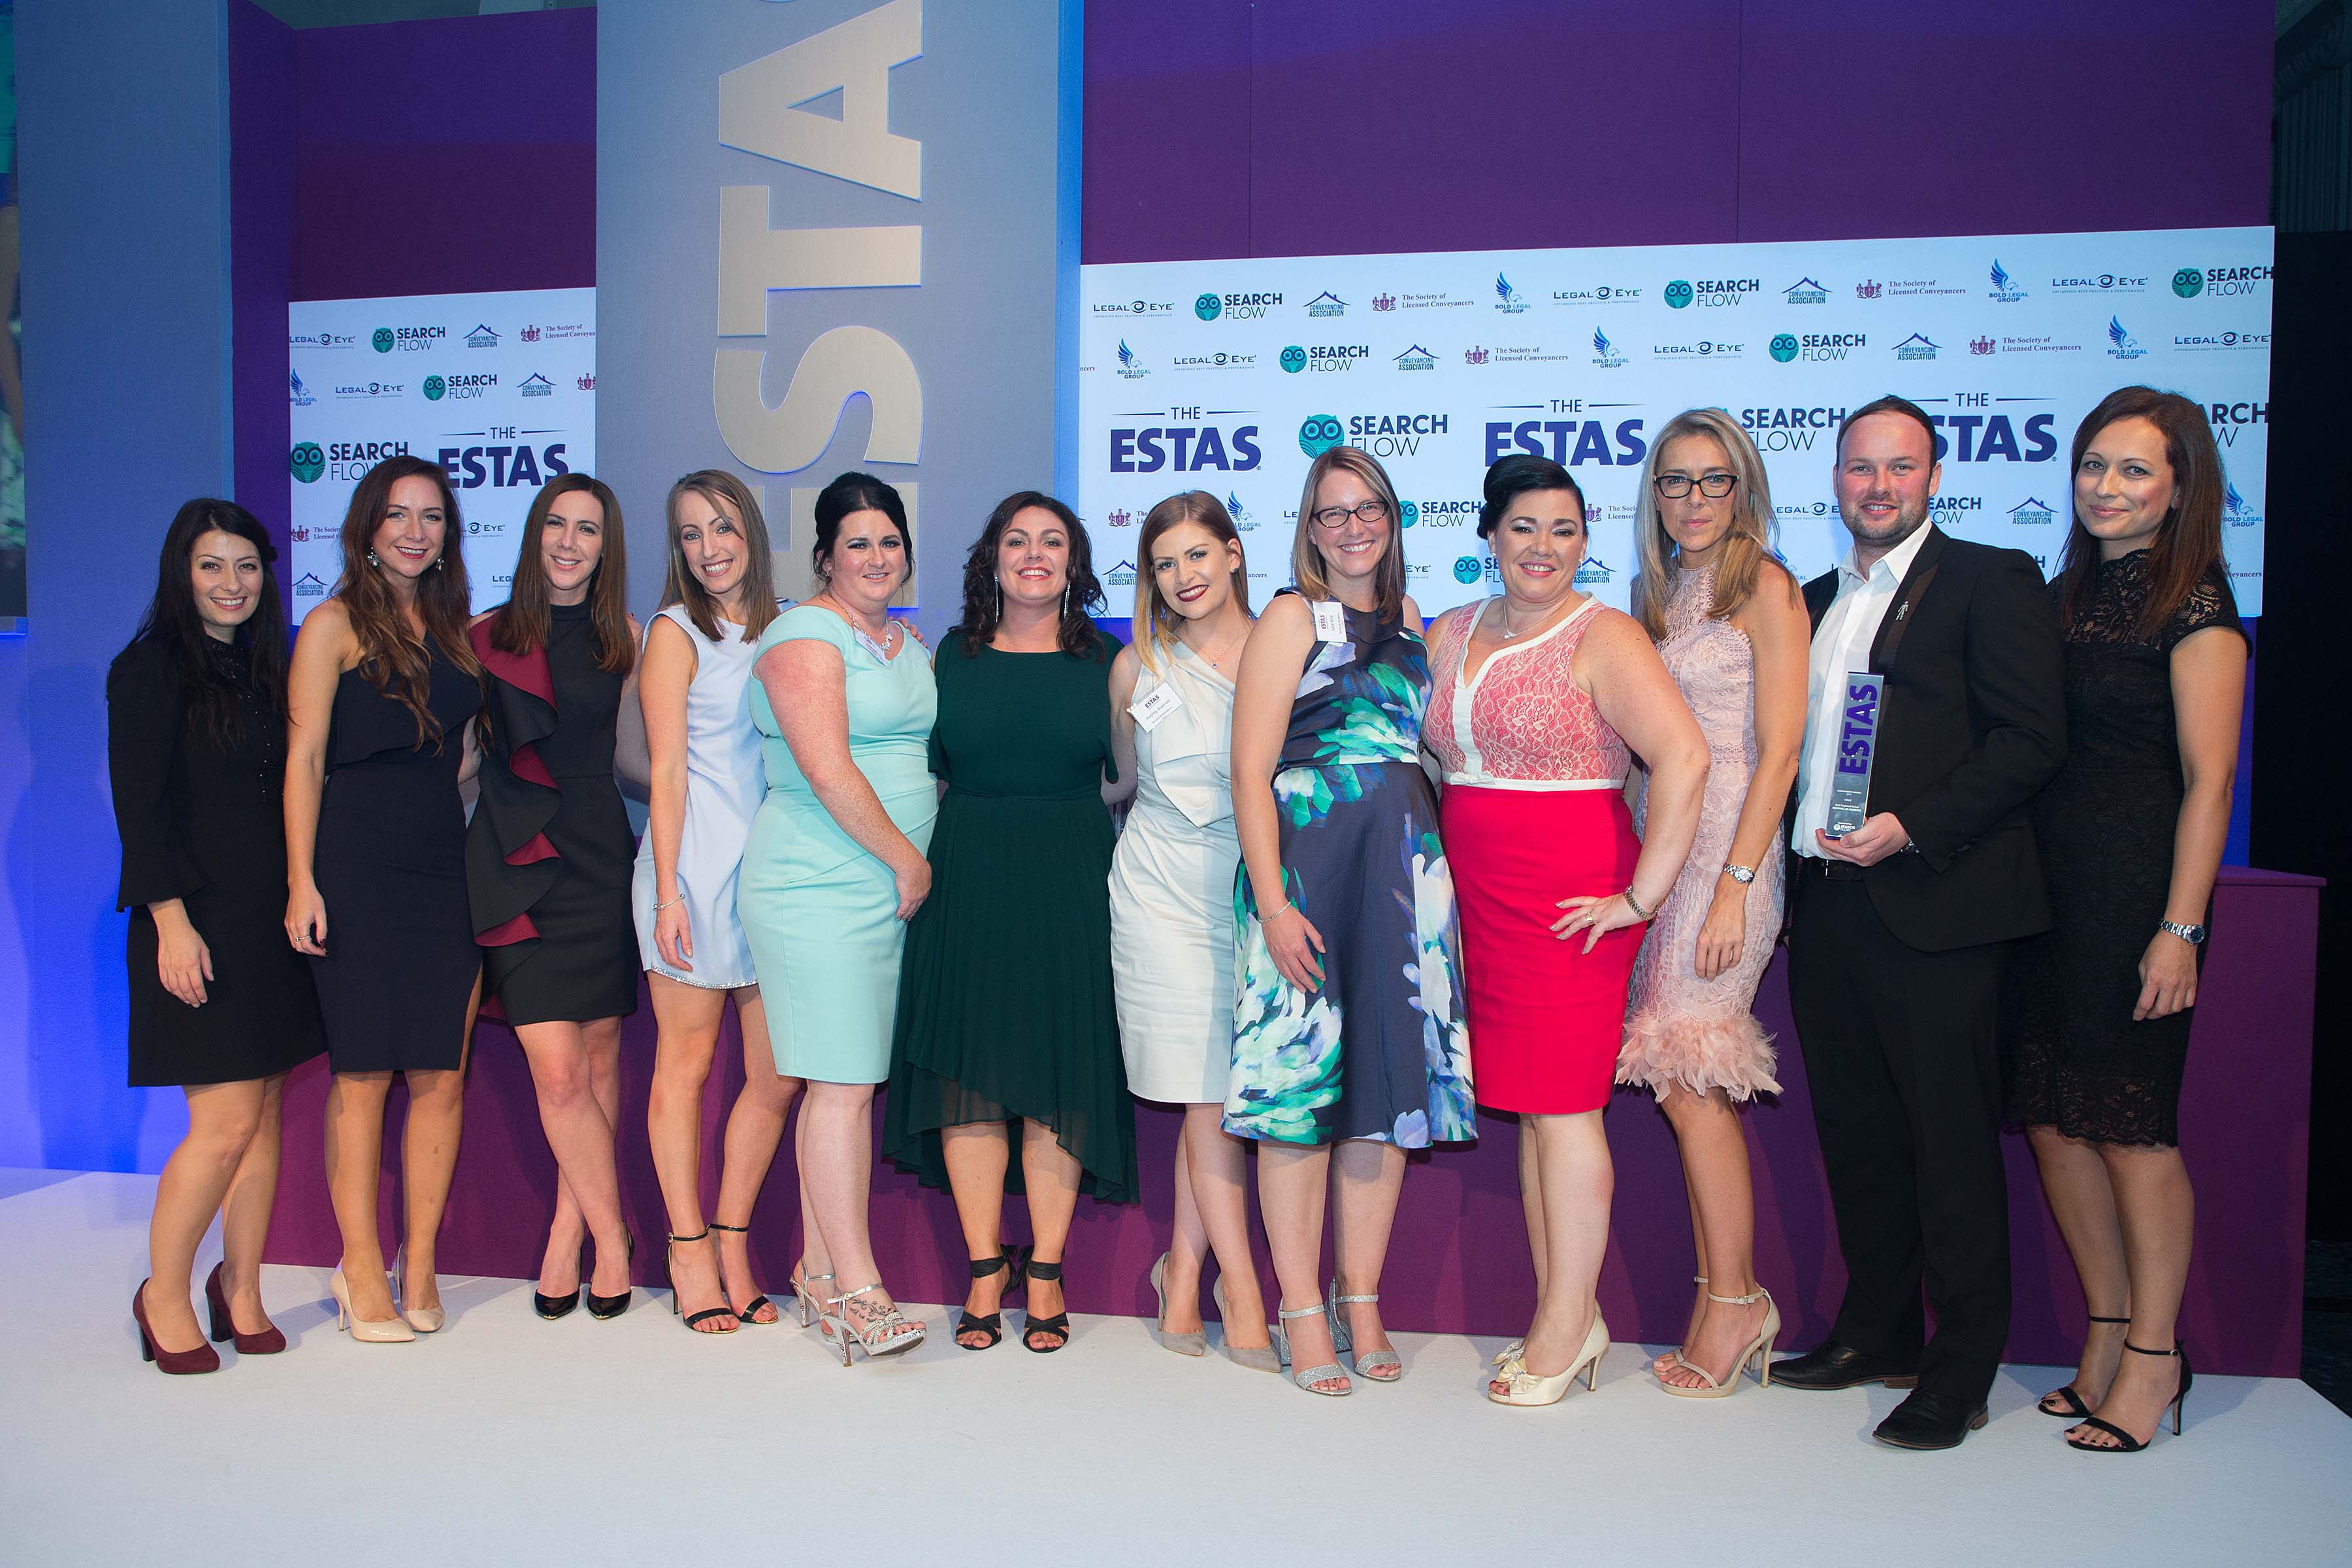 Birchall Blackburn Law took home a total of 11 awards at The ESTAS 2017